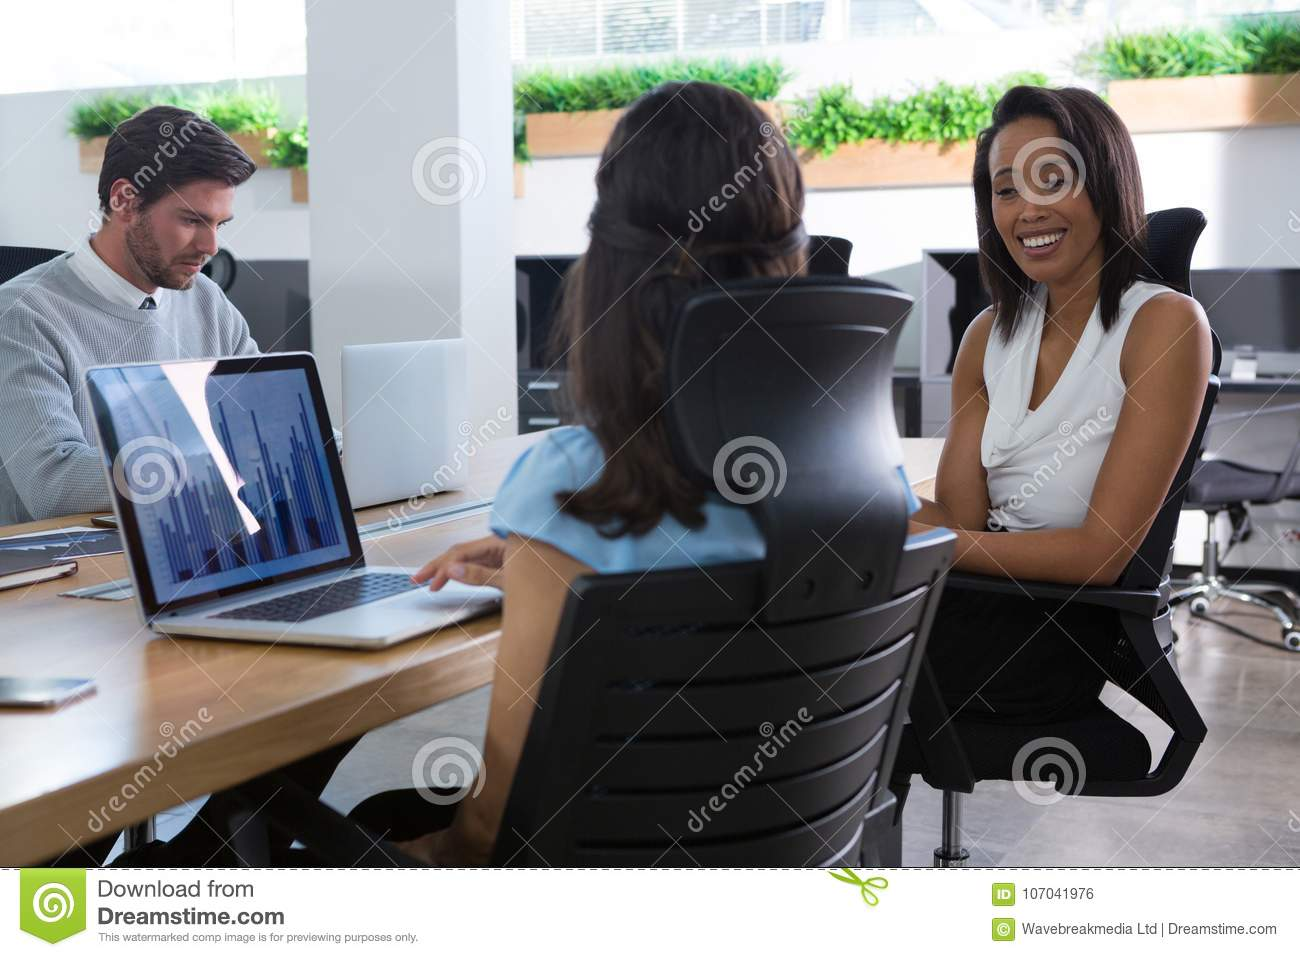 Female executive talking to each other at desk